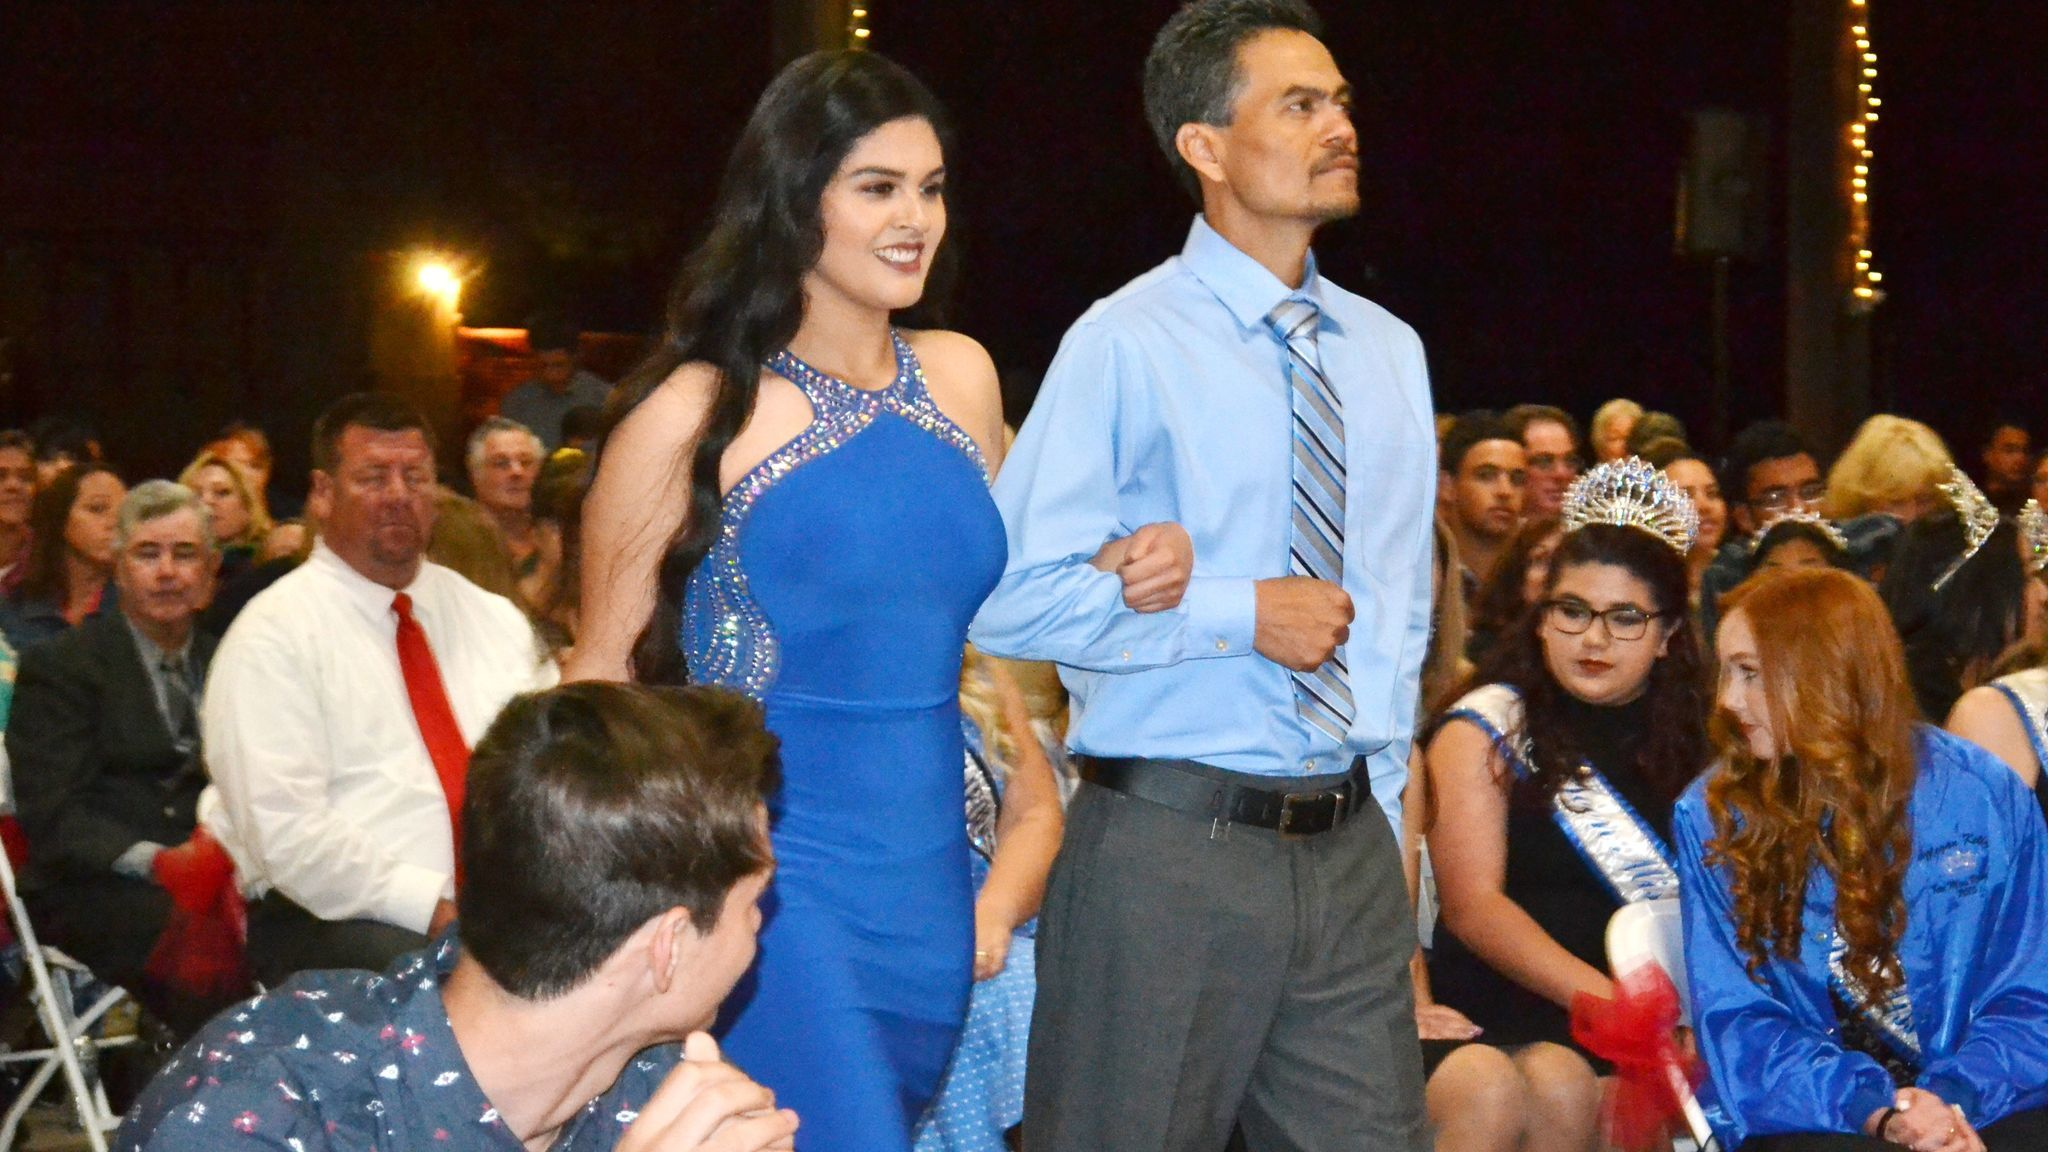 Miss Ramona contestant Mariana Gonzalez-Lopez, escorted by her stepfather, Miguel Busto, walks down the aisle in her evening gown.